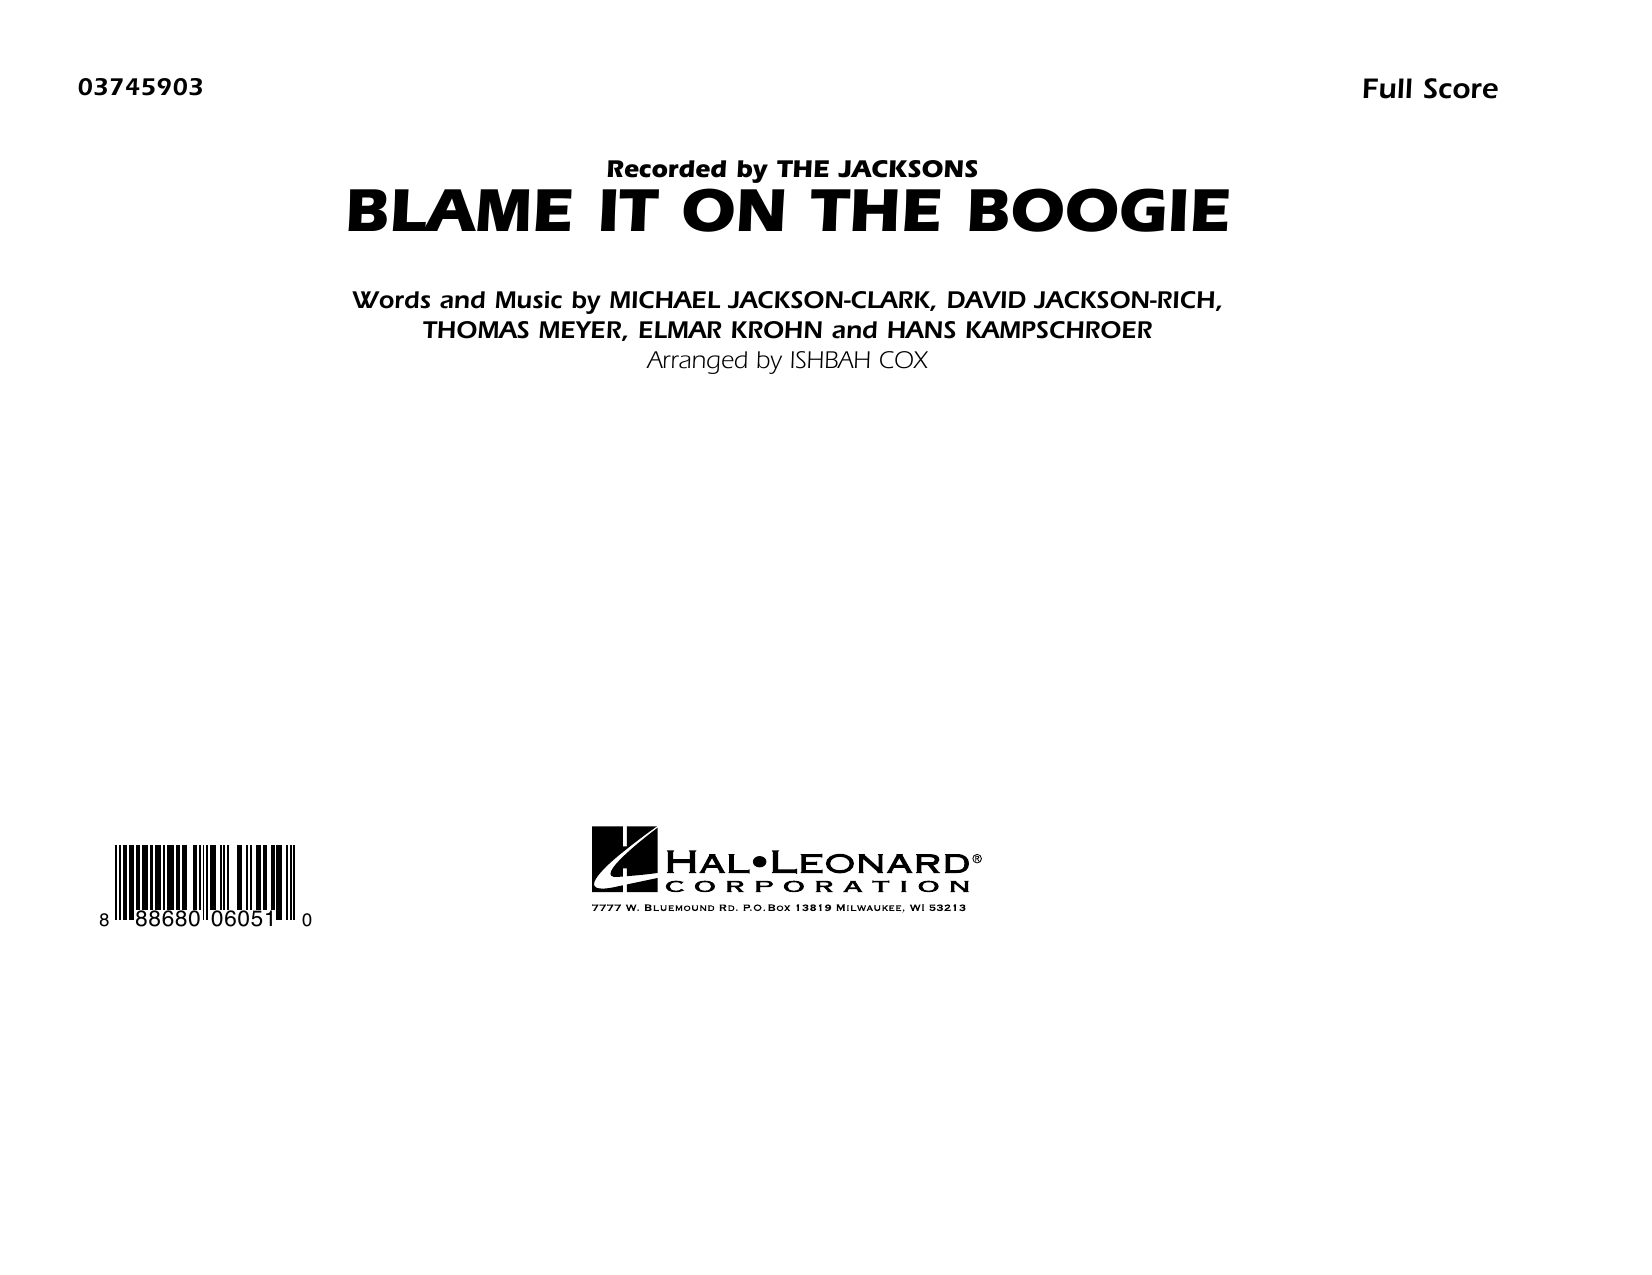 Blame It on the Boogie (COMPLETE) sheet music for marching band by Ishbah Cox